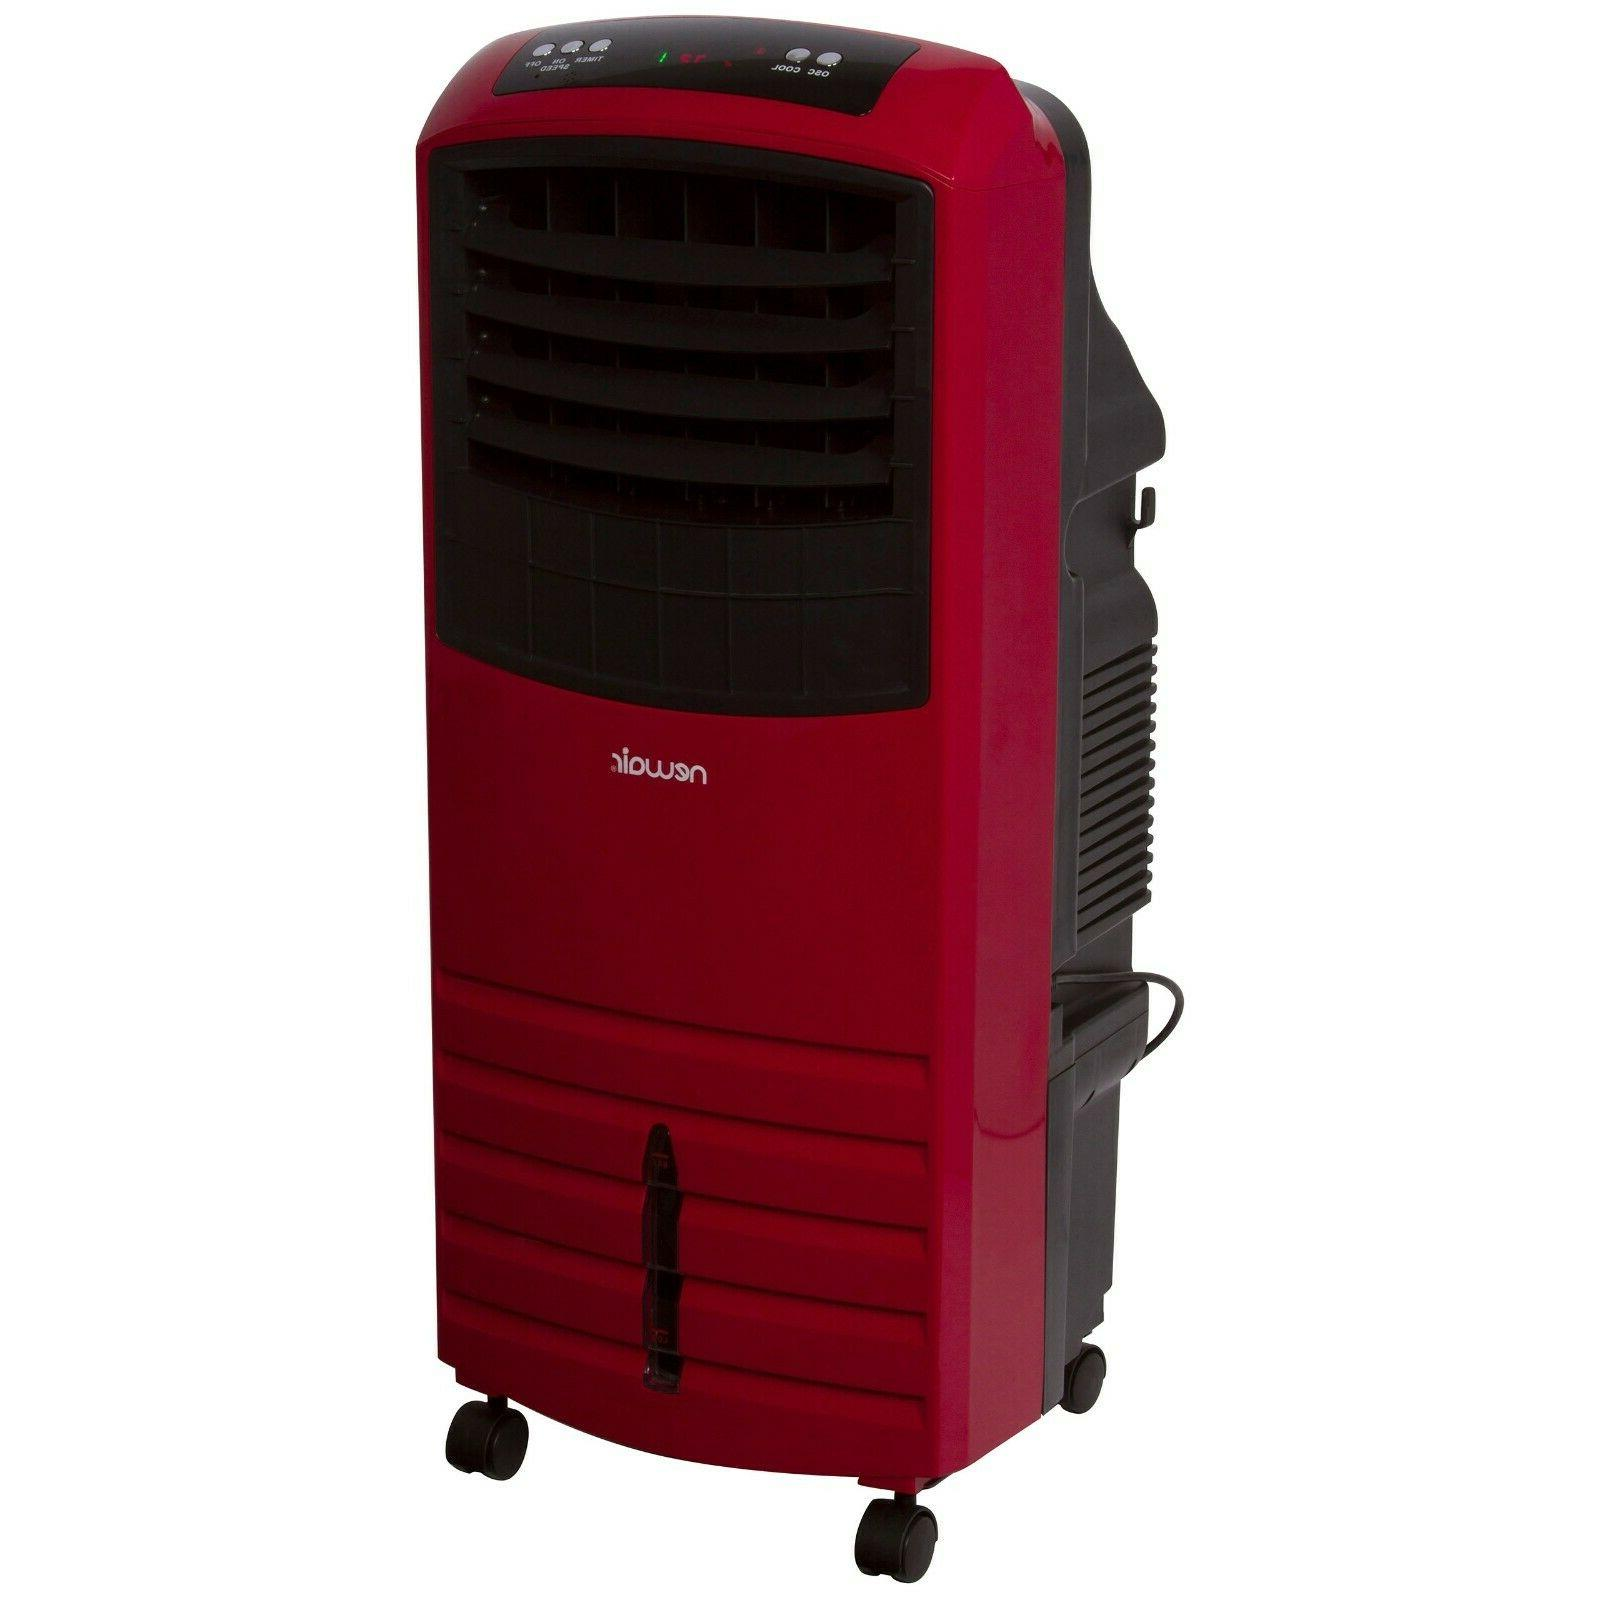 Ivation 10,000 BTU Portable Air Conditioner – Compact Sing